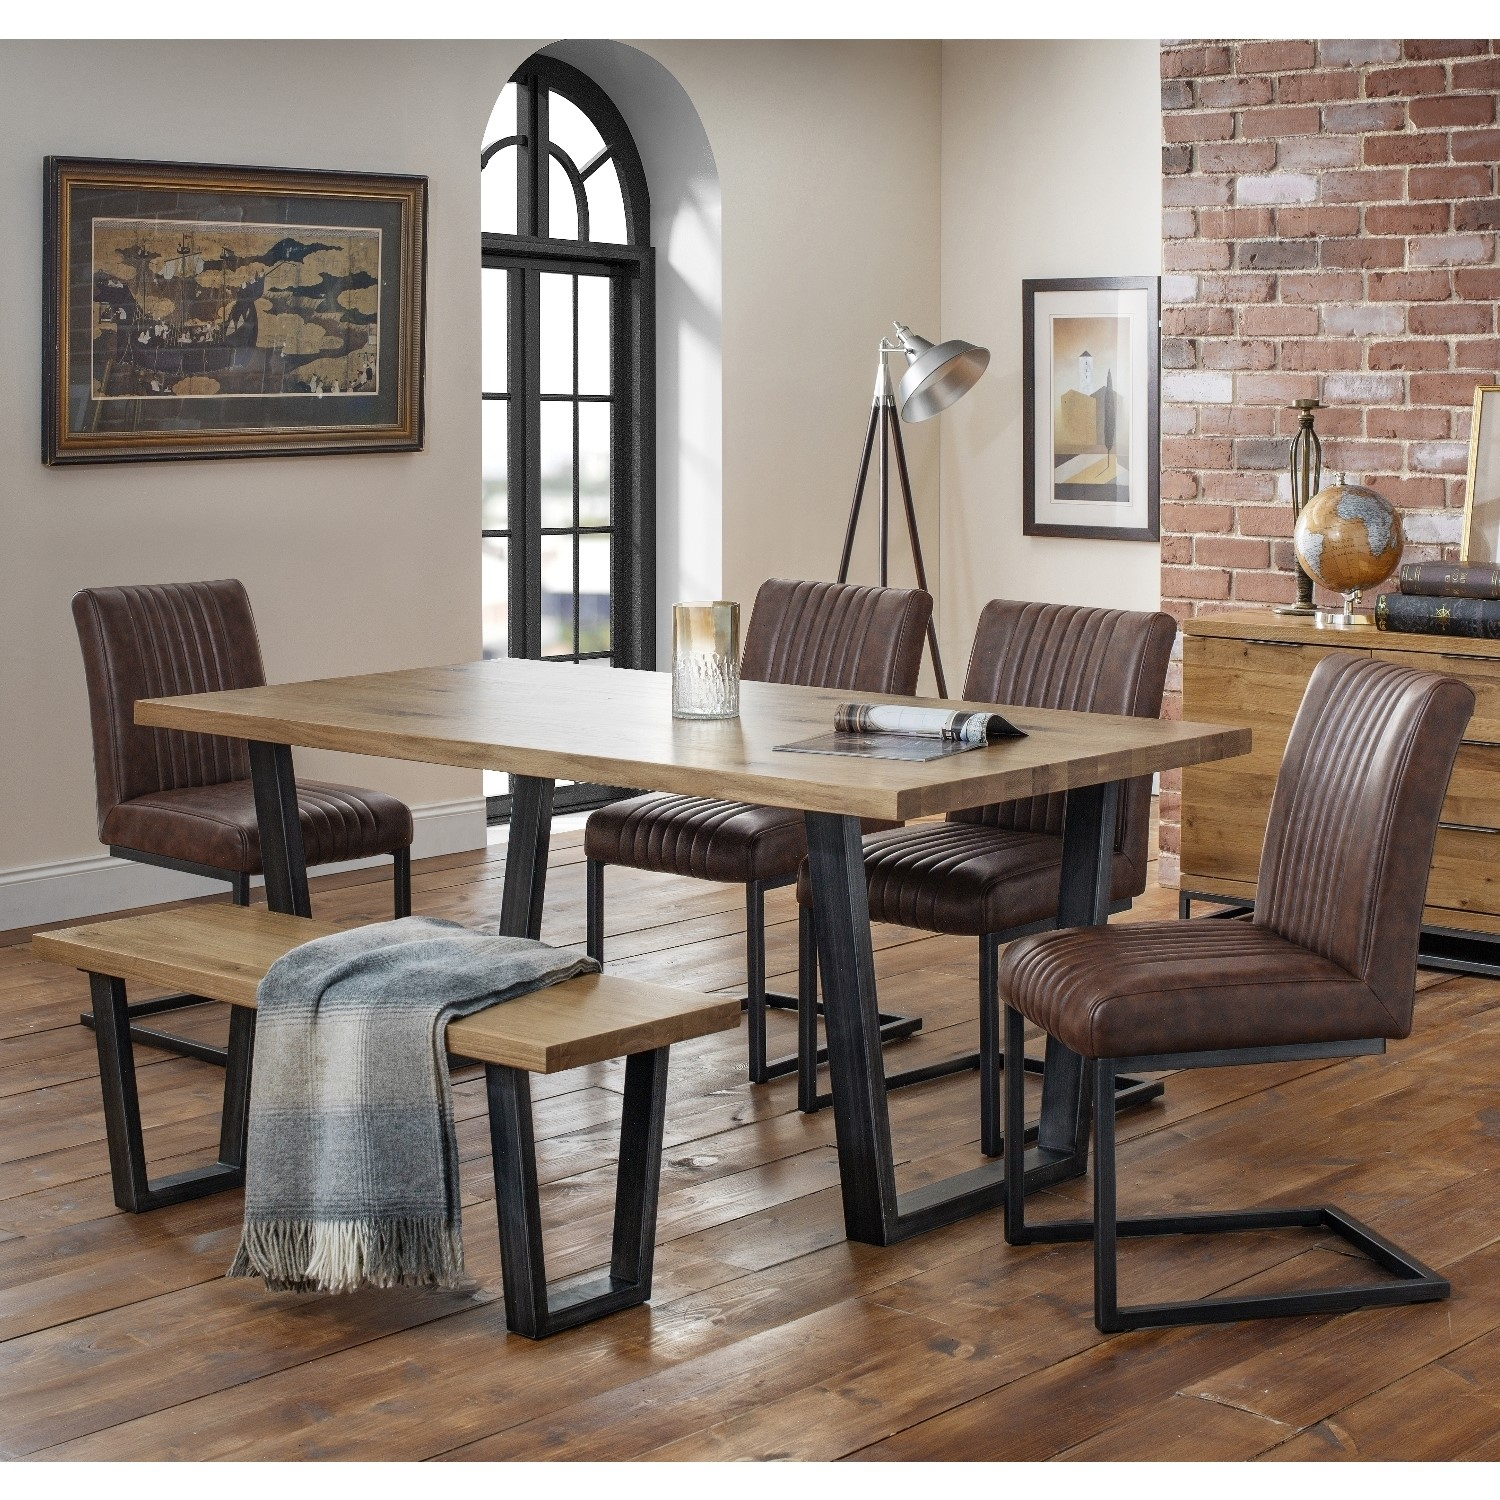 Photo of Julian bowen industrial oak bench dining set with 4 brown leather chairs - brooklyn